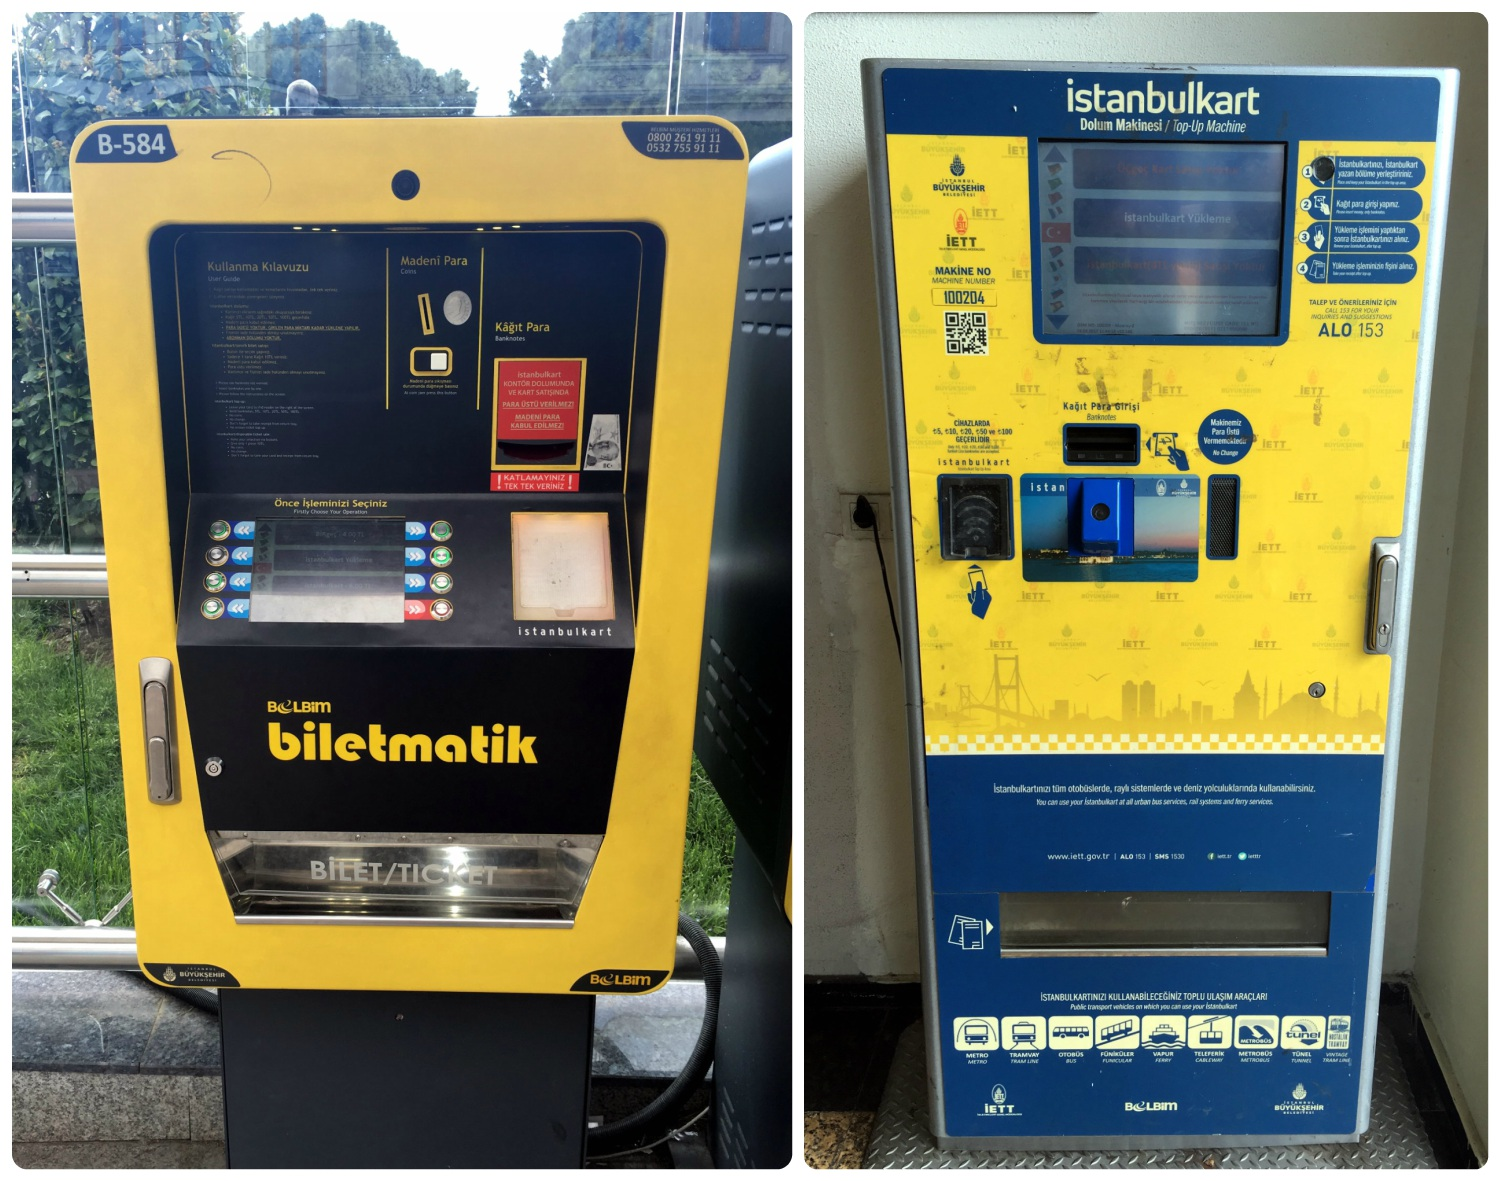 You can refill your Istanbul card on the Biletmatik machine  or  the Istanbulkart Top-Up Machine. Purchase the Istanbulkart on the older, blue and yellow Istanbulkart machine (shown in right image).